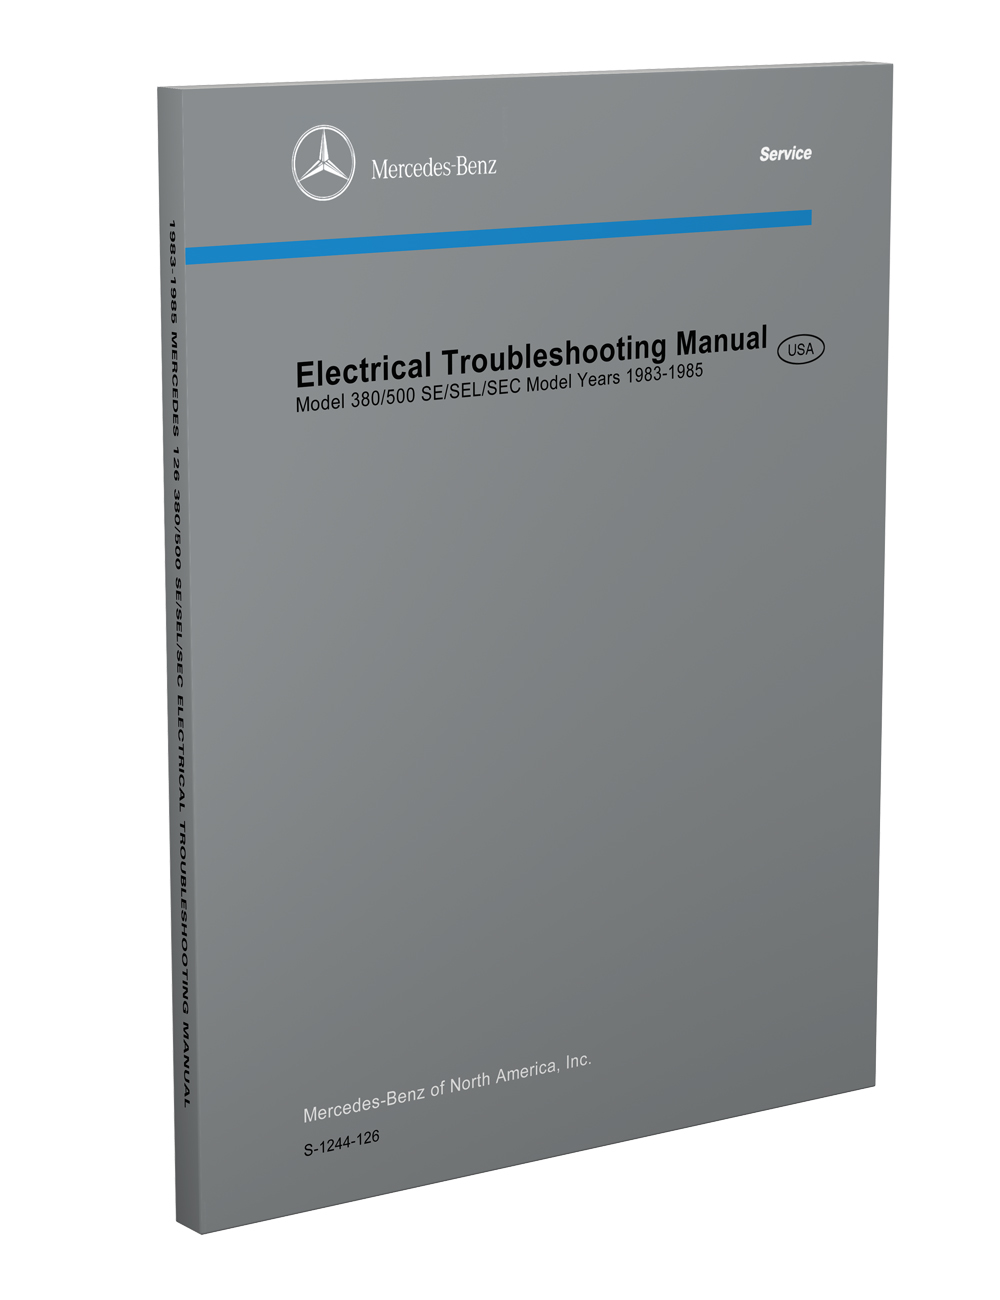 medium resolution of 1983 1985 mercedes electrical troubleshooting manual reprint 380 500 se sec sel